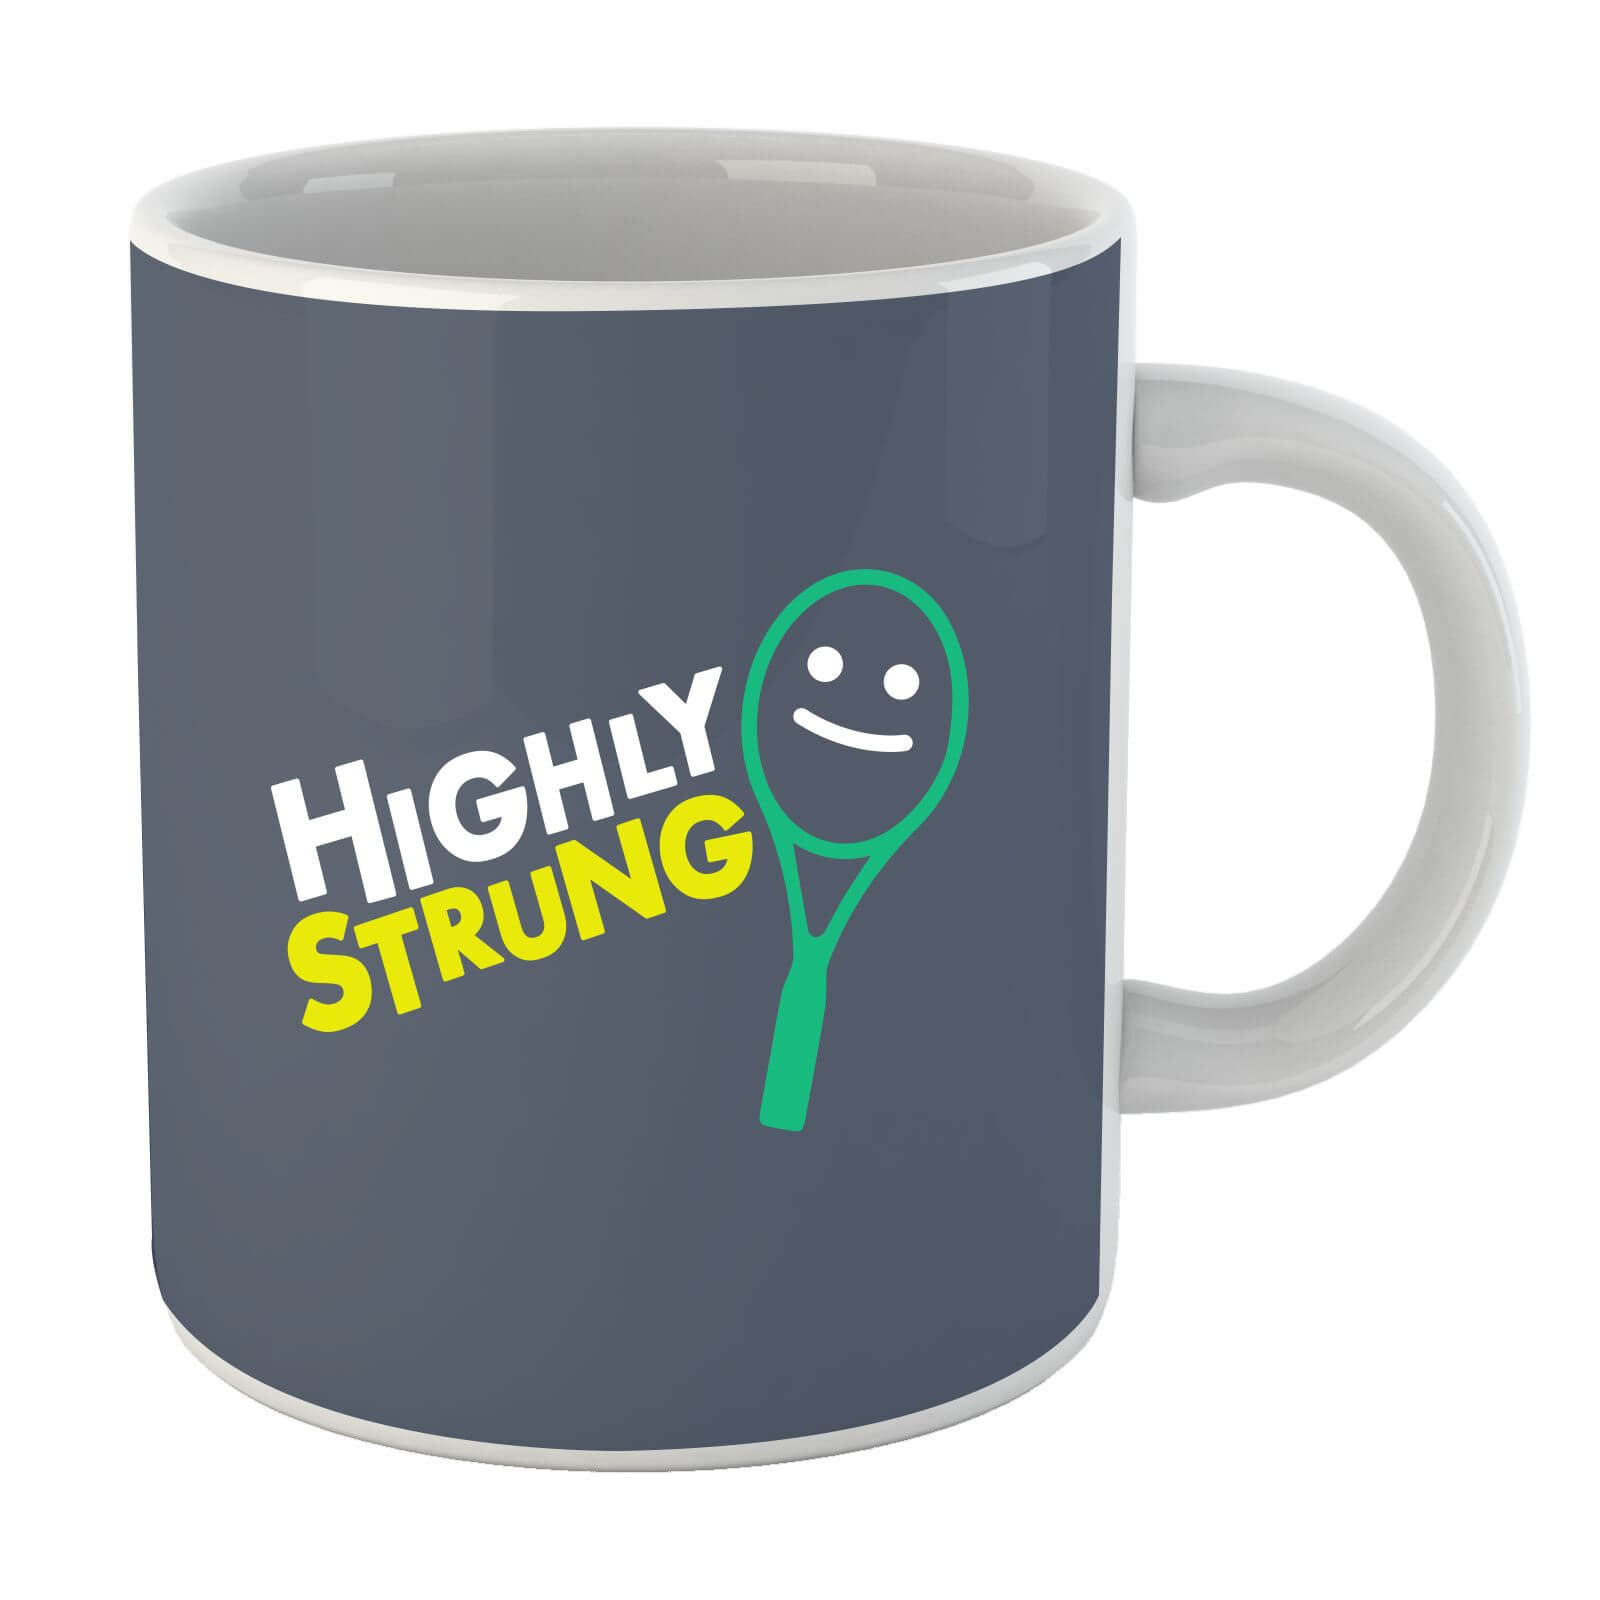 Highly Strung Mug